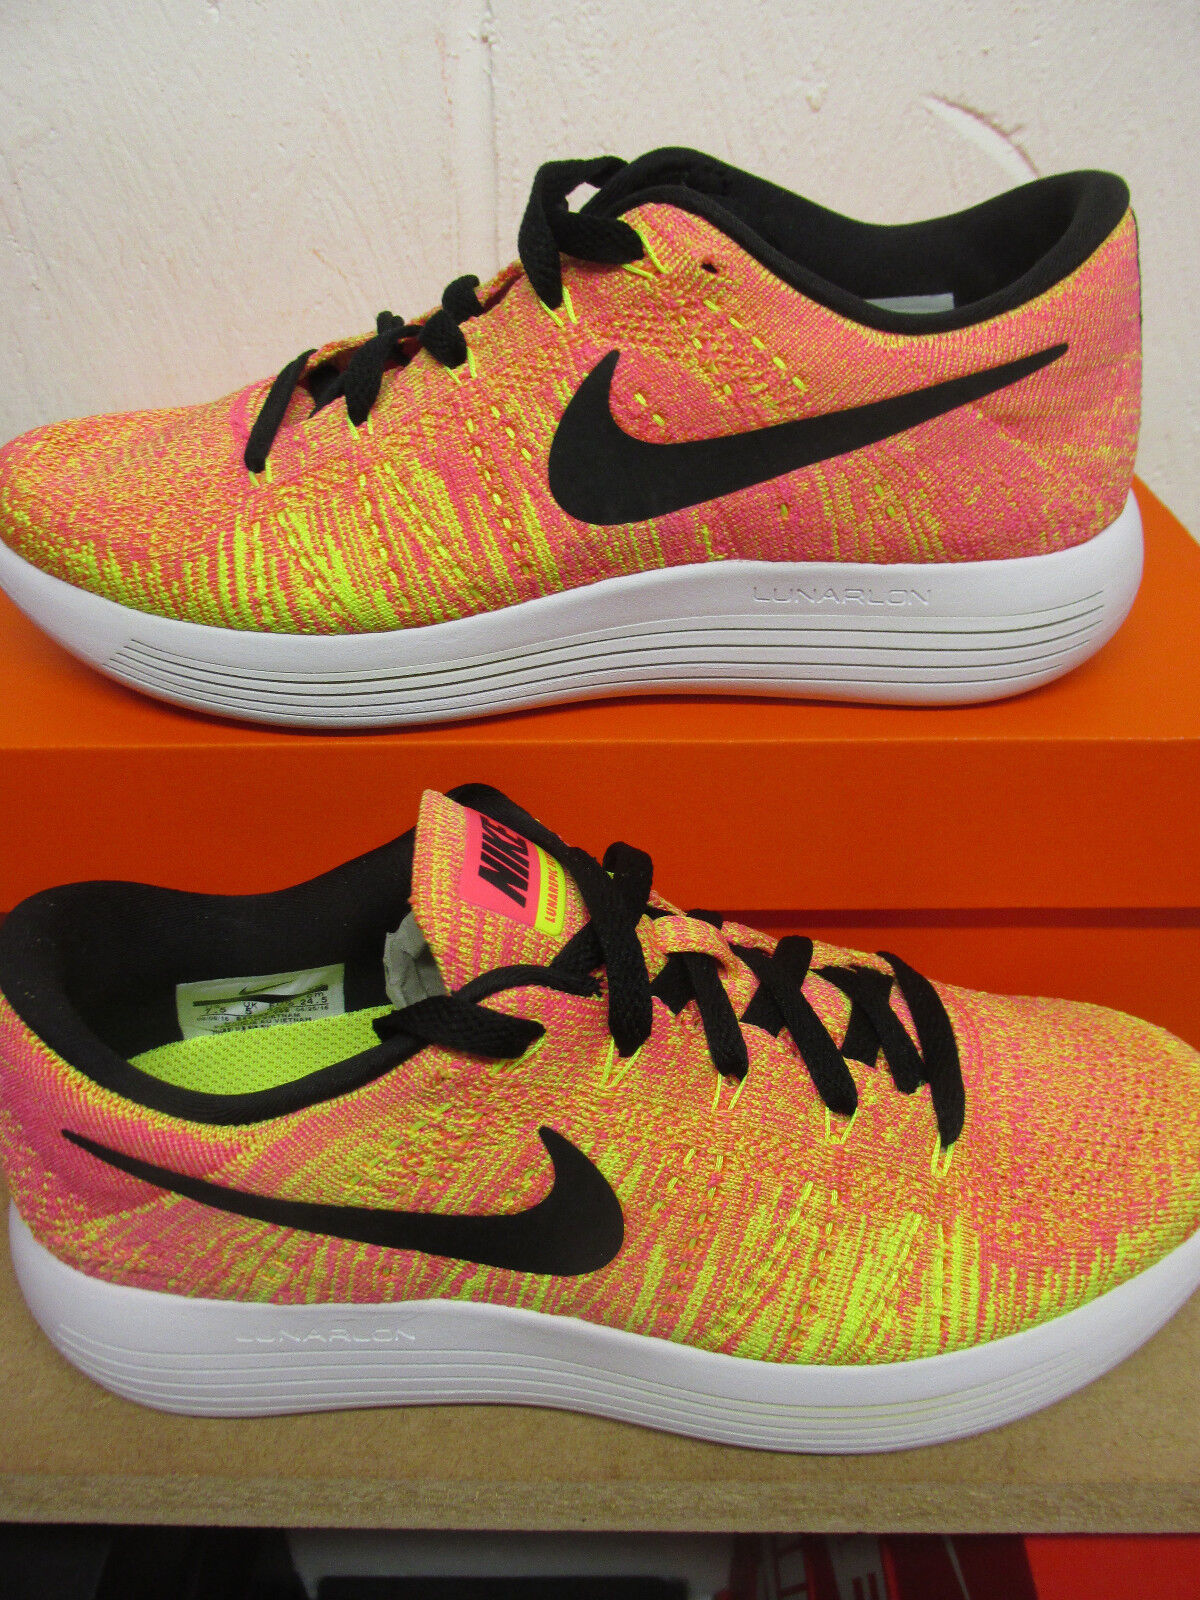 new concept aa9ec 6c940 Nike Womens Lunarepic Low Flyknit OC Running Running Running Trainers  844863 999 Sneakers Shoes e6e526